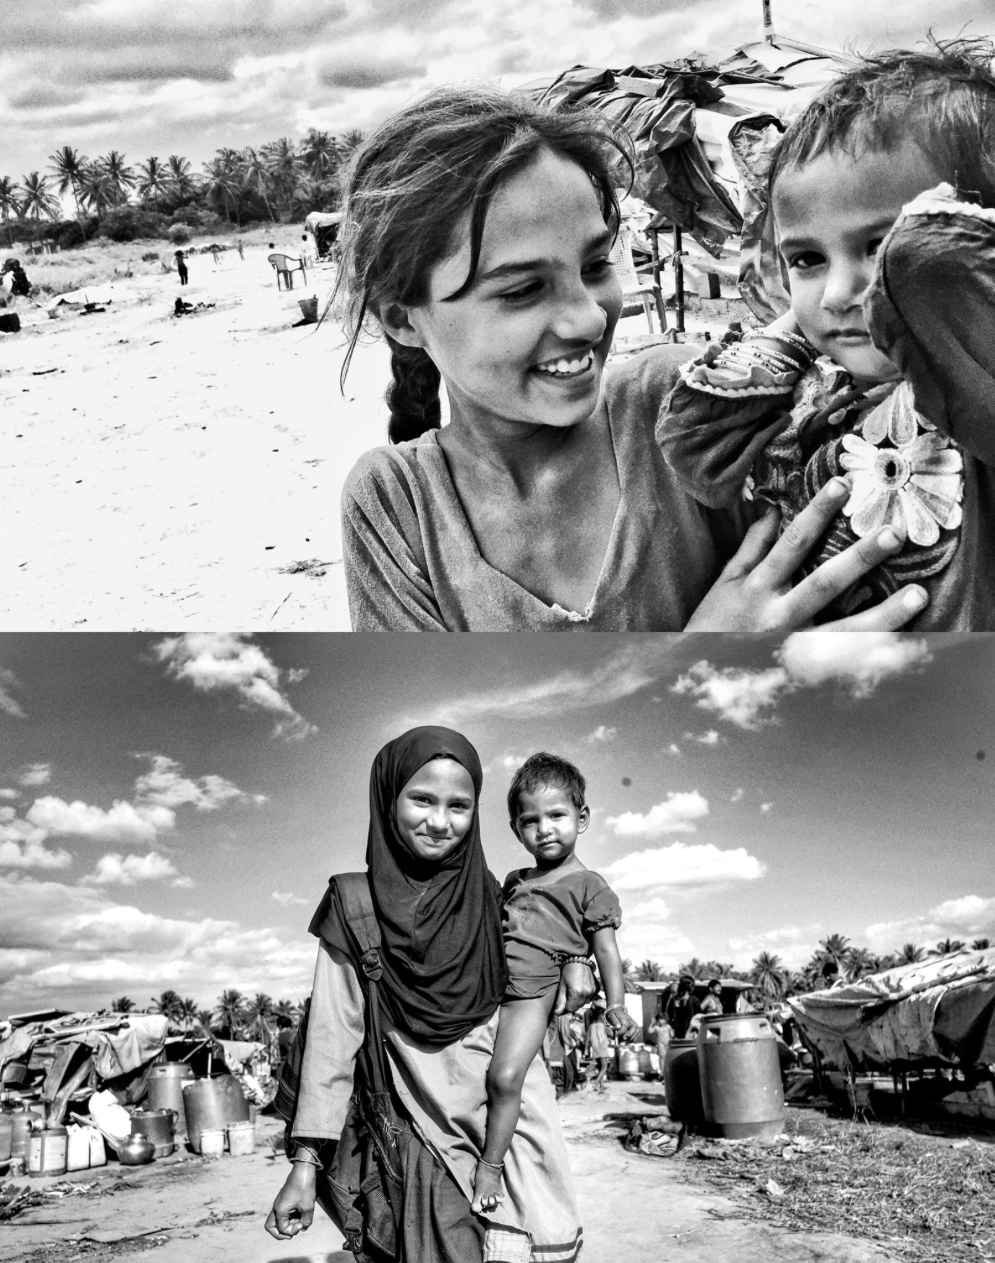 Meet Rehana and her younger sister Aisha. I met Rehana a few weeks ago (photo on top) where she was walking around the dusty colony barefooted carrying her baby sister around. When asked about school, she said that she didn't go to school that day because her mother had to go for a bath. Let that sink in.. A girl who already faces numerous odds doesn't go to school because she has to take care of her sister while her mother goes for a bath. The community has very poor hygiene an sanitation and the availability of water is a privelage which pushes aside even basic education. Today however, I was happy to see her come back from school all smiling and fresh in her uniform (bottom photo). Her mother's next bath day may be another day without school though. #BangaloreBaptistHospital Community Health Department provides healthcare and training to this community regularly and my documentary project there enabled to meet these lovely children.